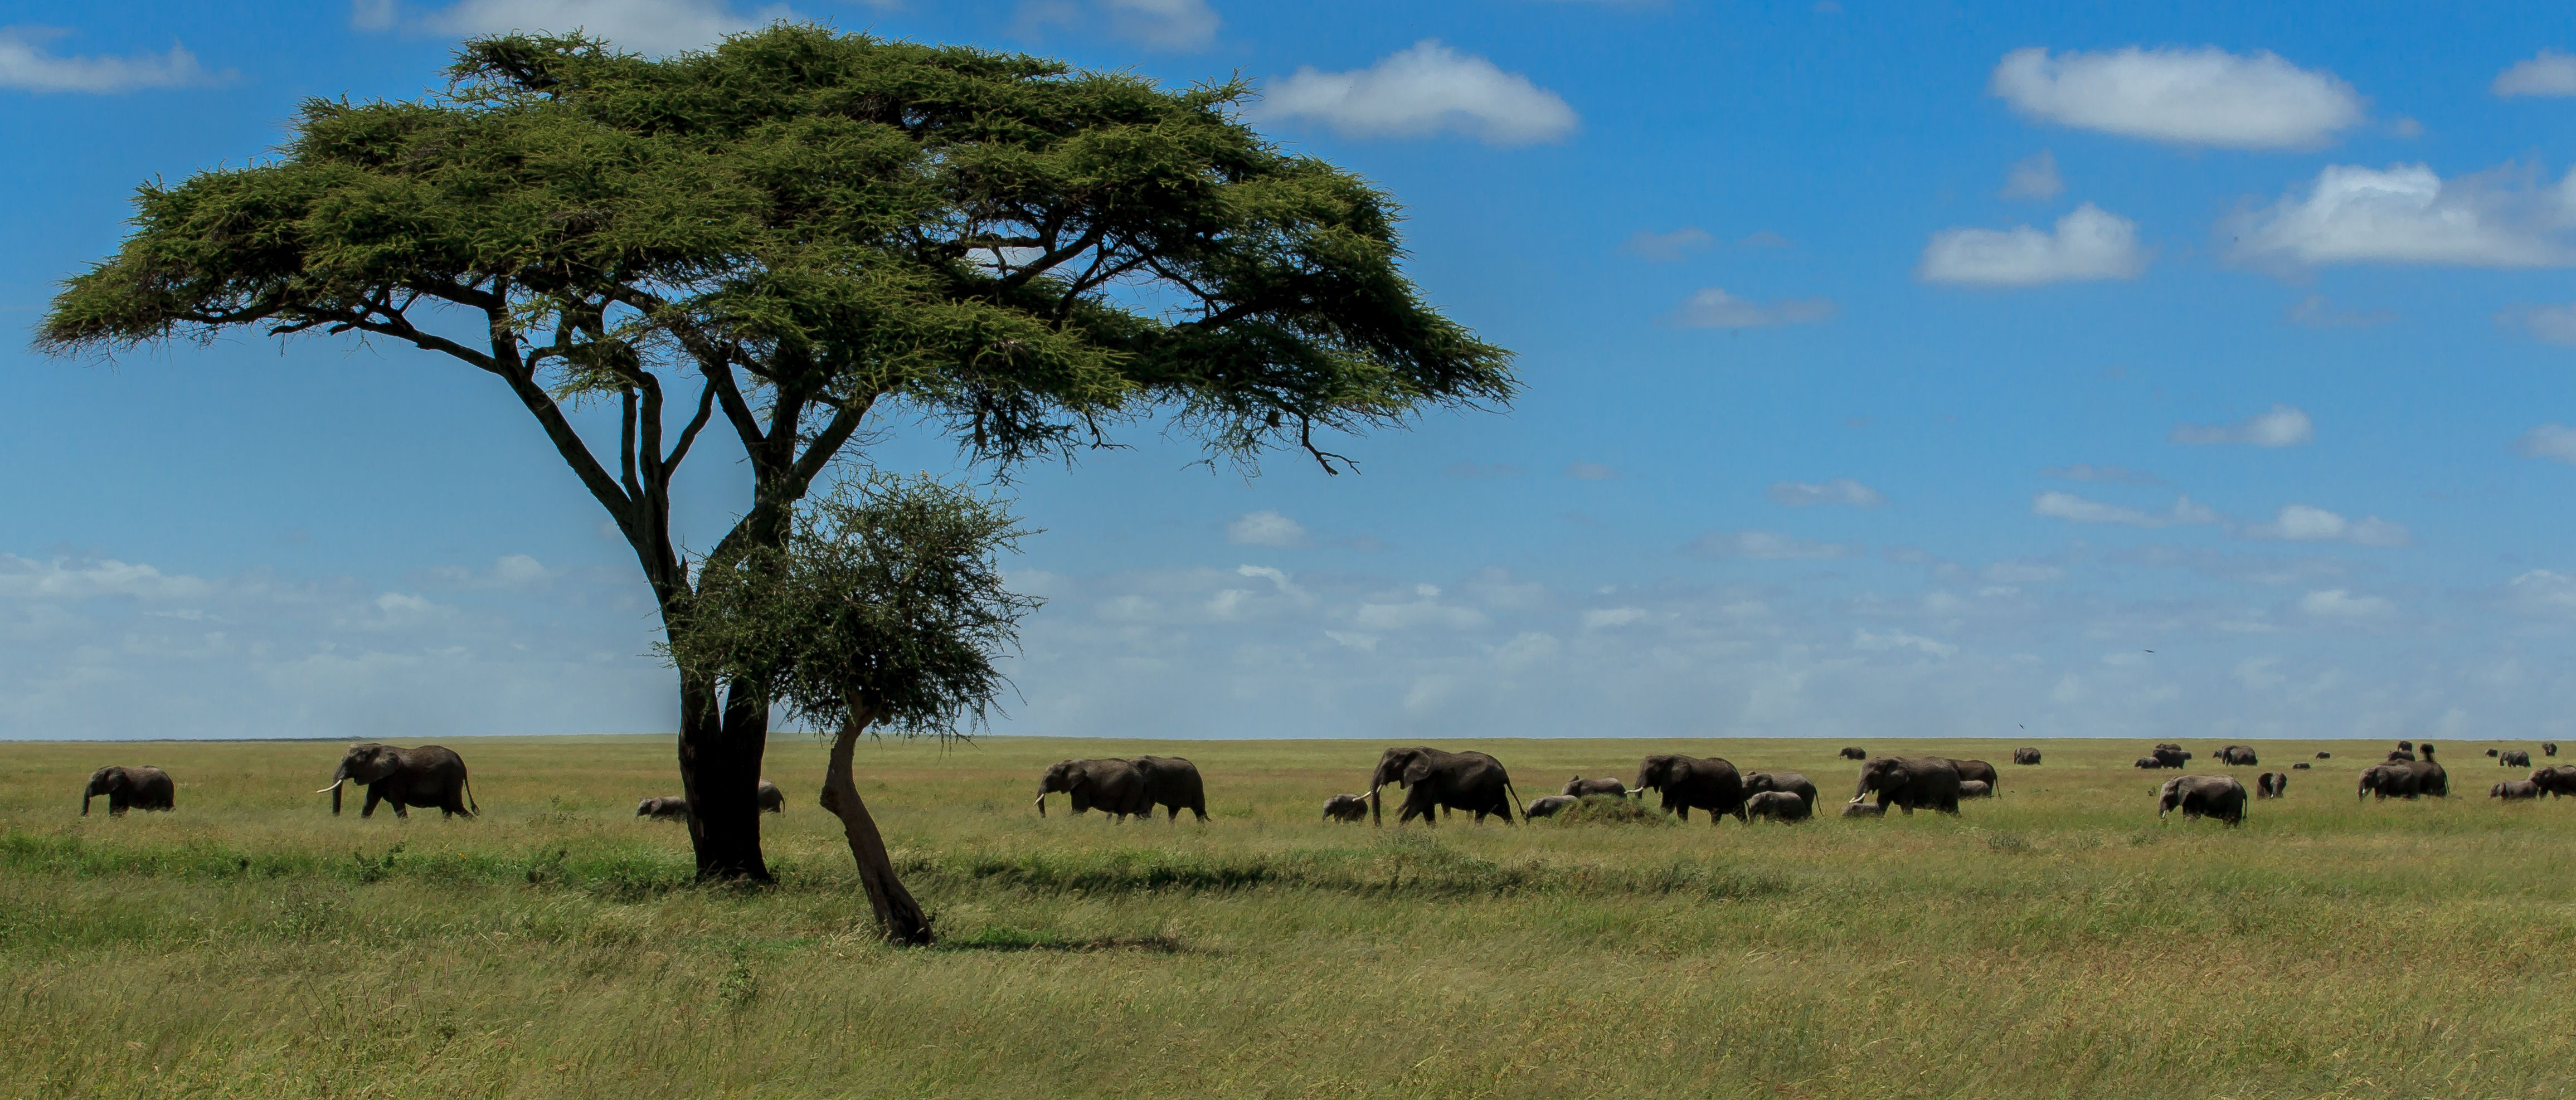 Panoramic Shot Of Elephants On Field Against Sky